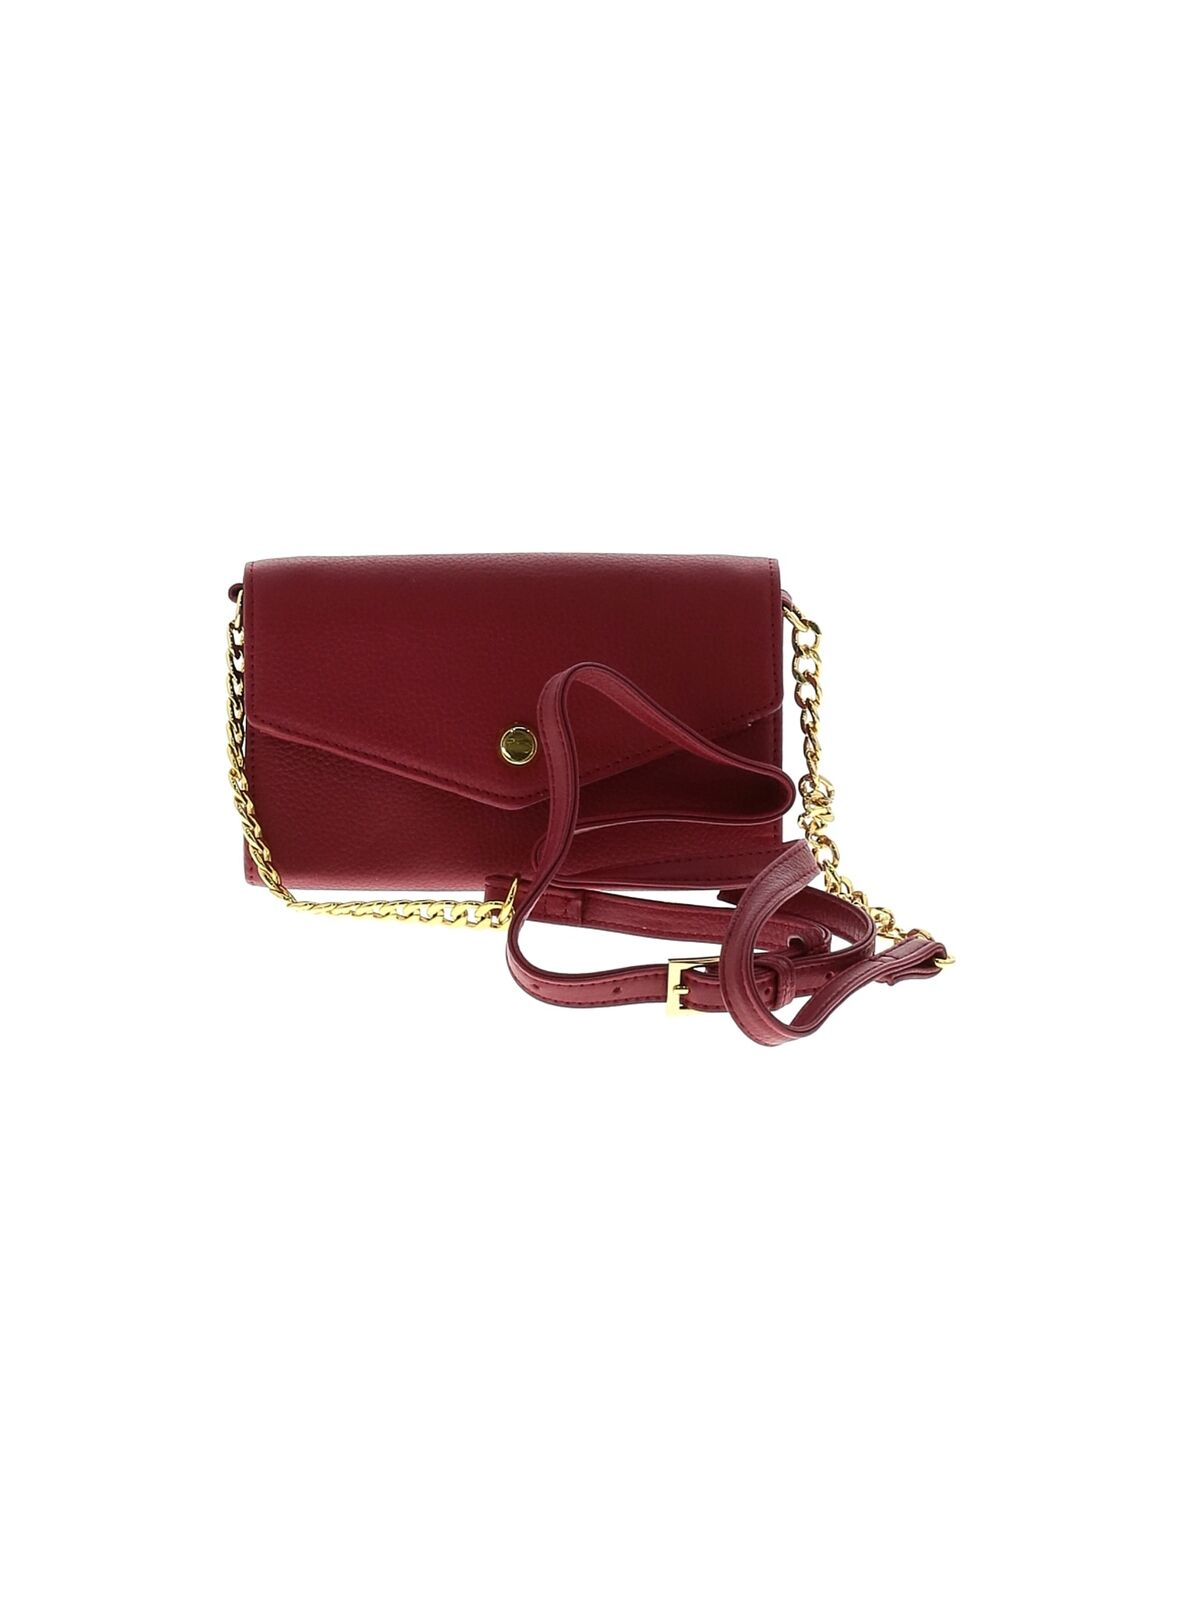 Stella & Max Women Red Leather Crossbody Bag One Size